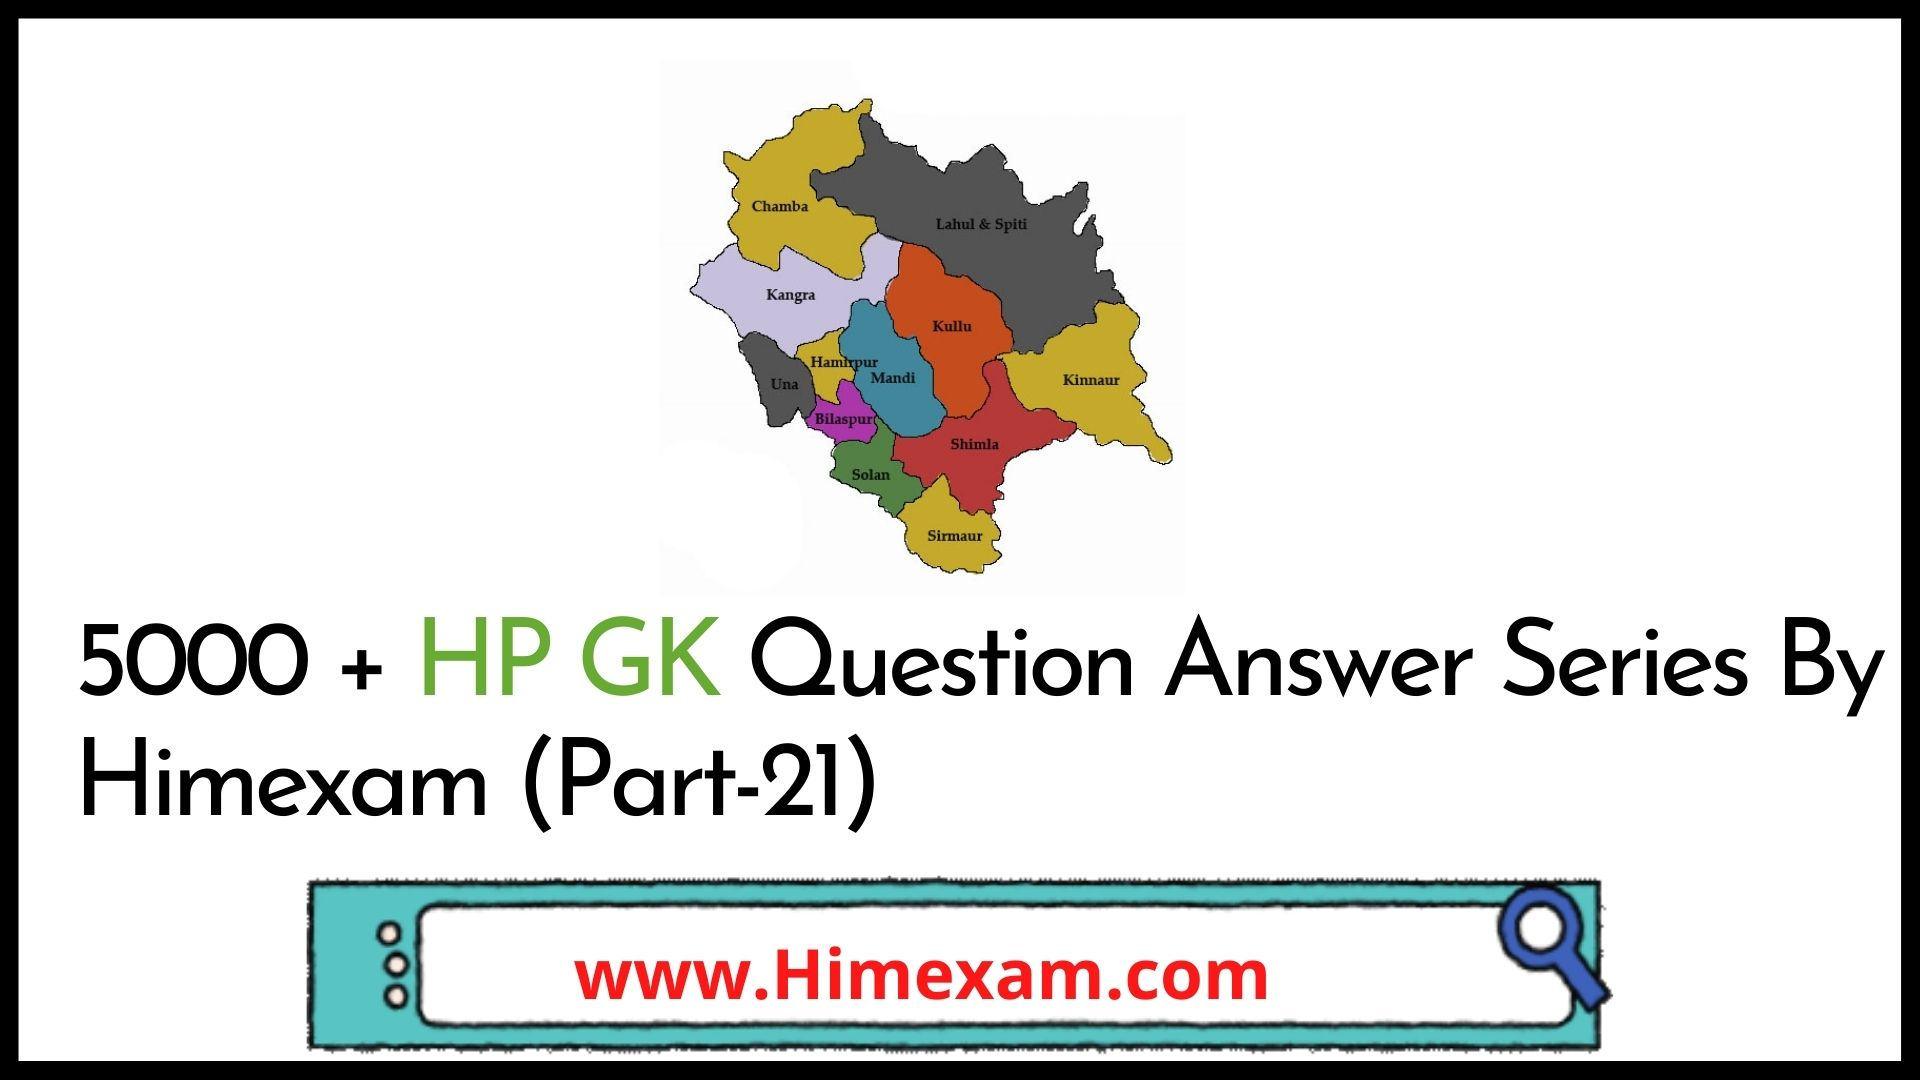 5000 + HP GK Question Answer Series By Himexam (Part-21)